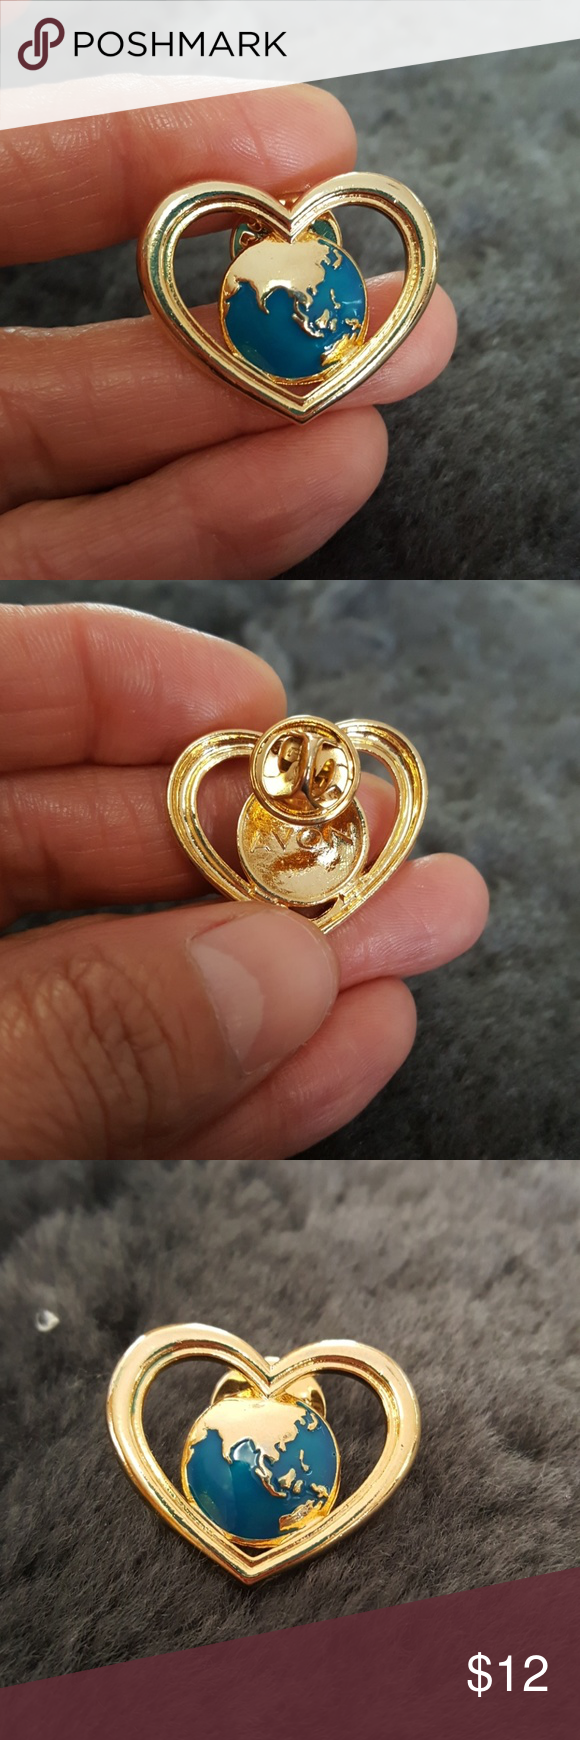 Vintage Avon Collectible Love Around The World Vintage Avon Collectible Love Around The World pin brooch. Enamel scatter signed Avon. Global Earth Heart. Avon Jewelry Brooches